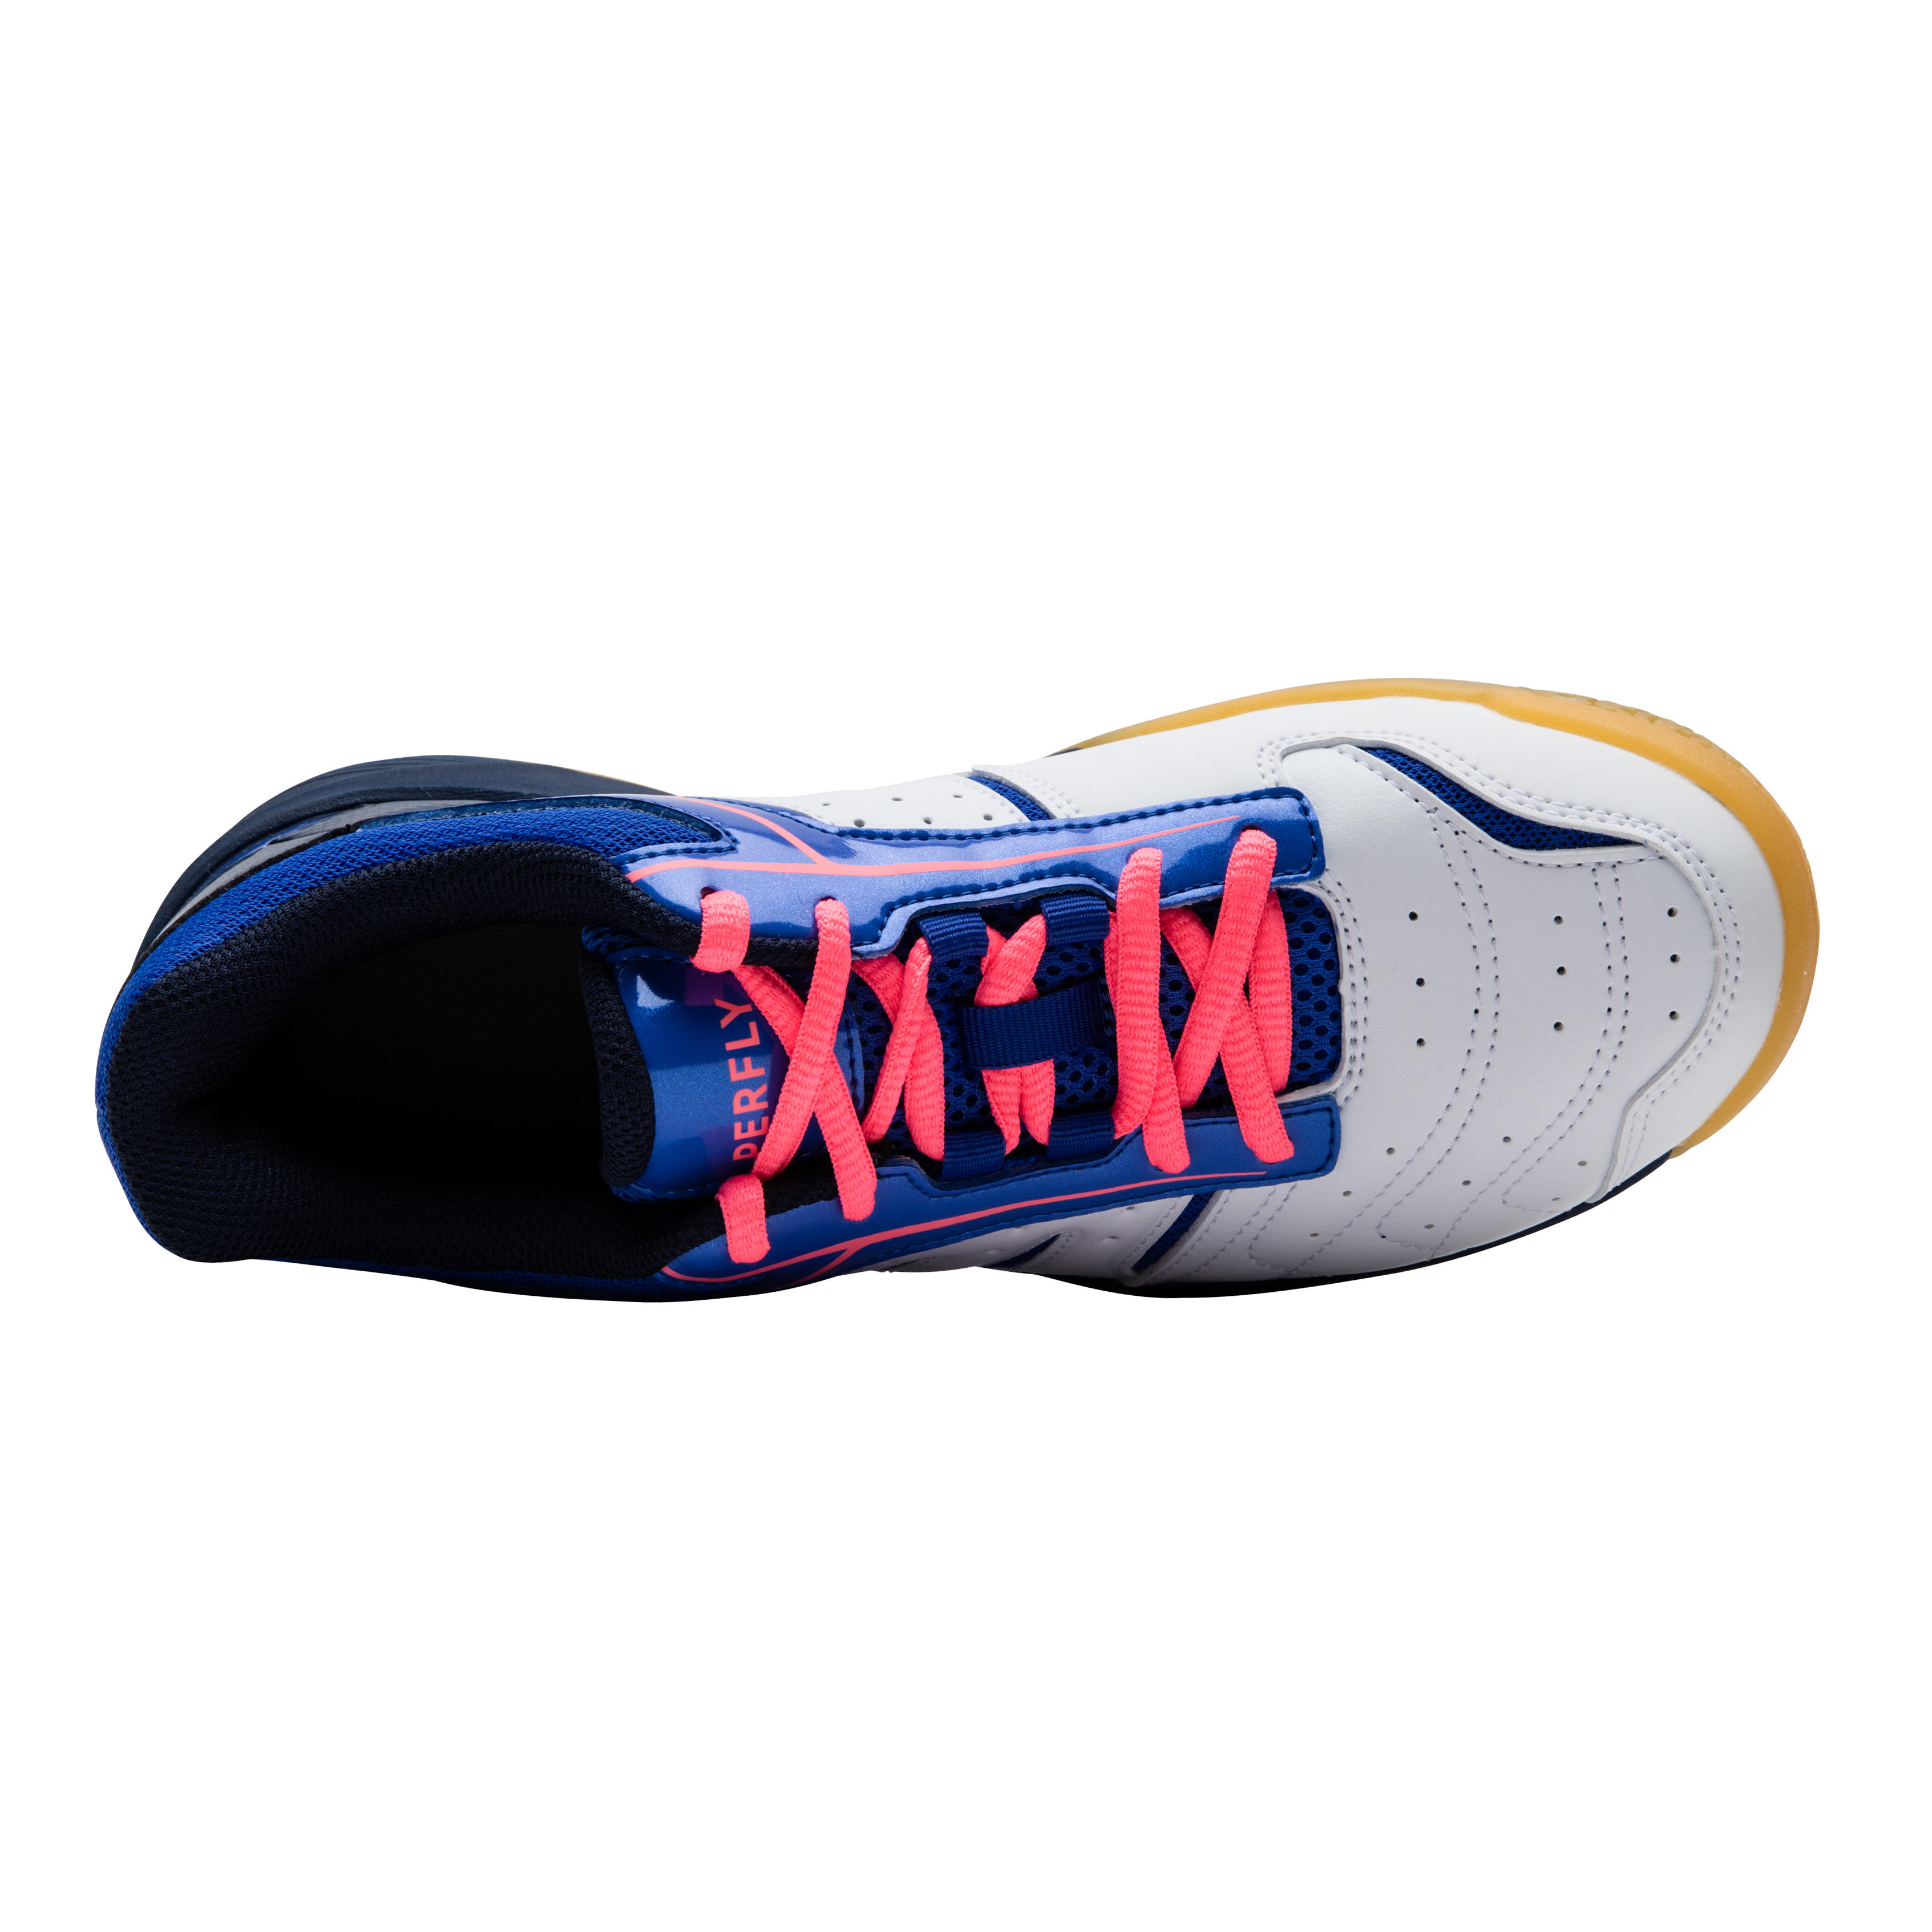 WOMEN BADMINTON SHOES LITE WHITE BLUE